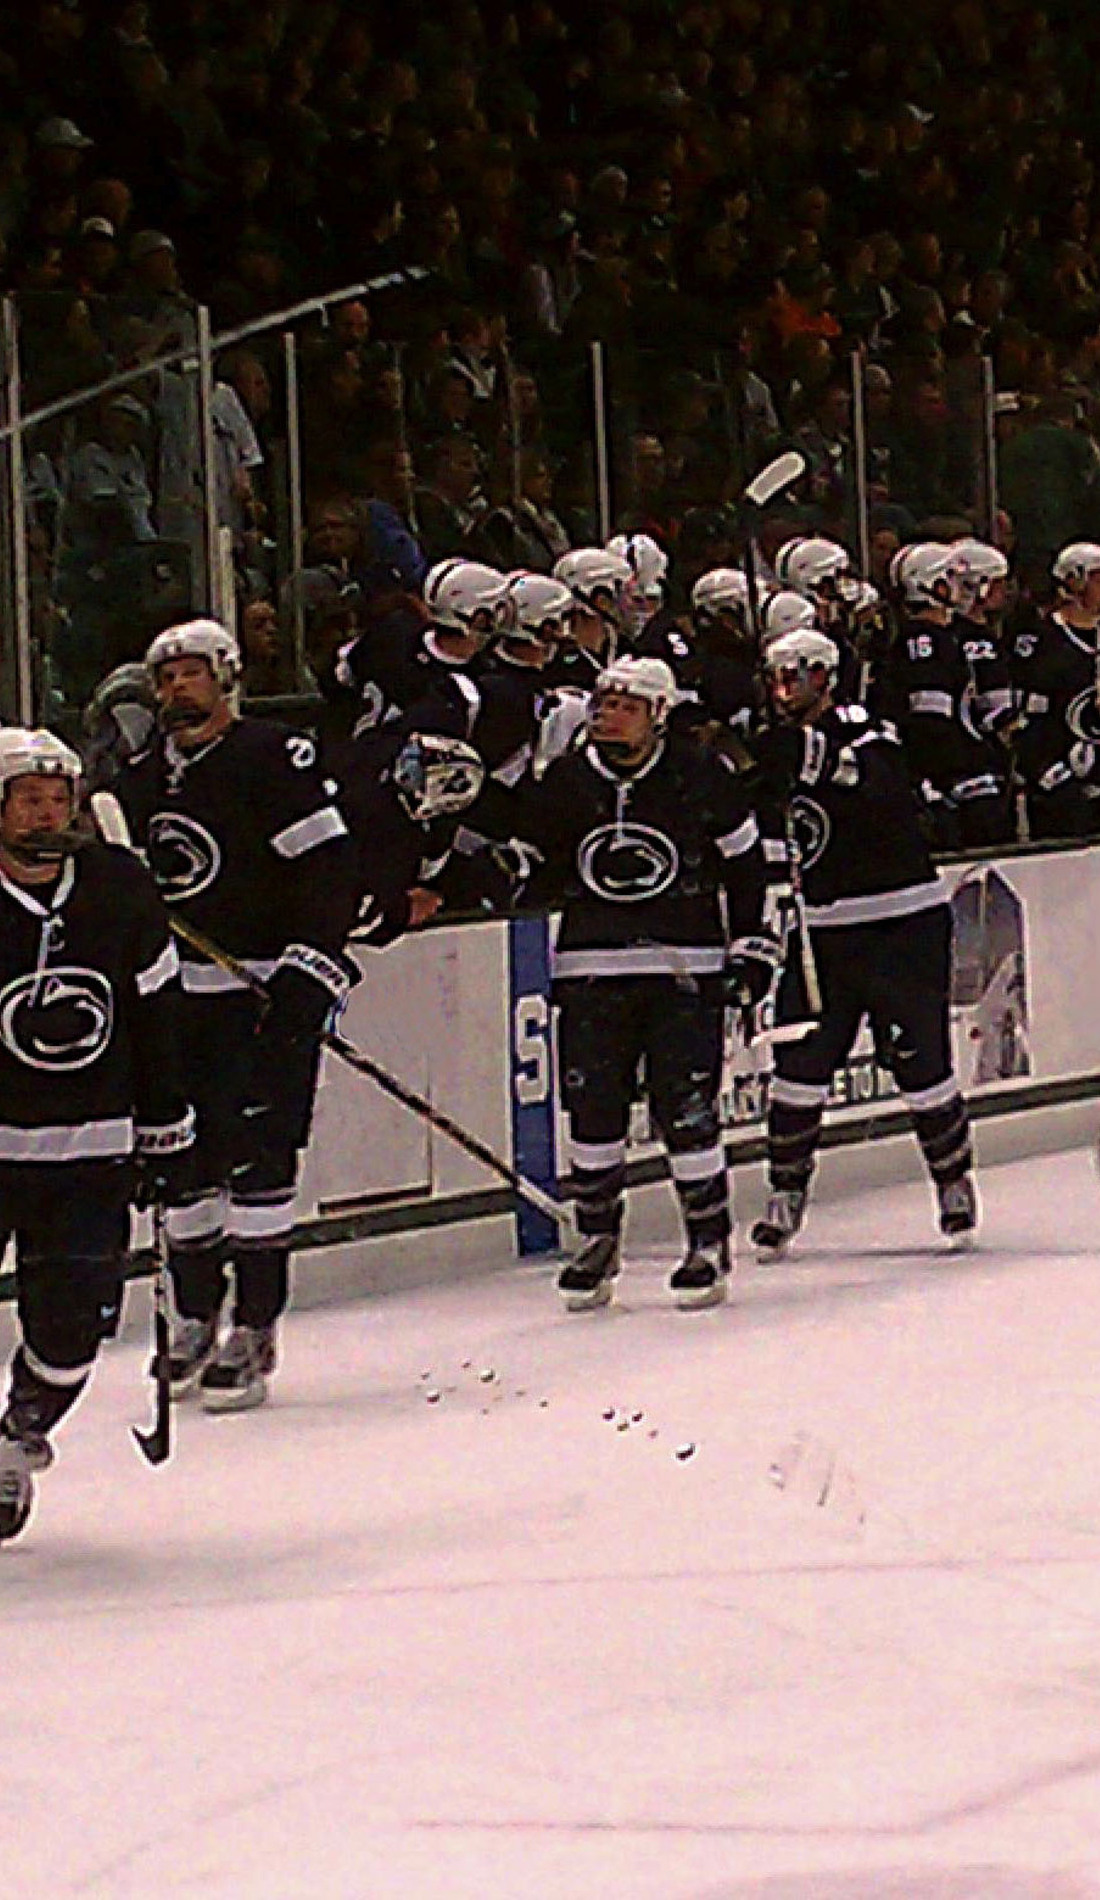 A Penn State Nittany Lions Hockey live event